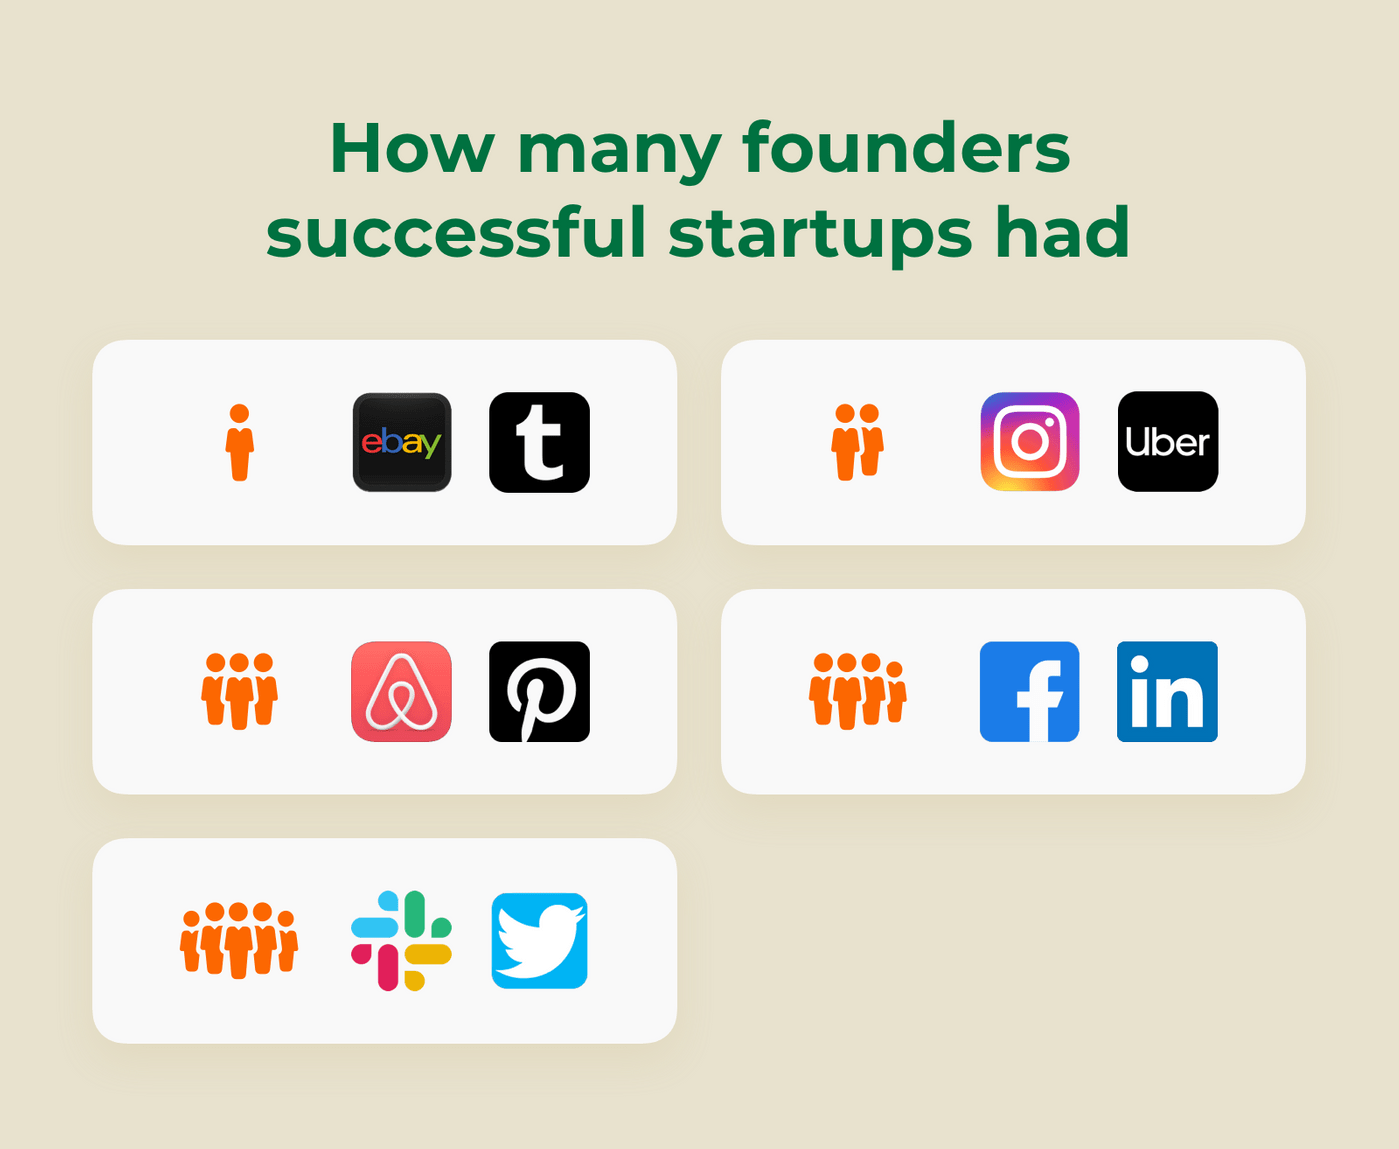 How many founders startups had